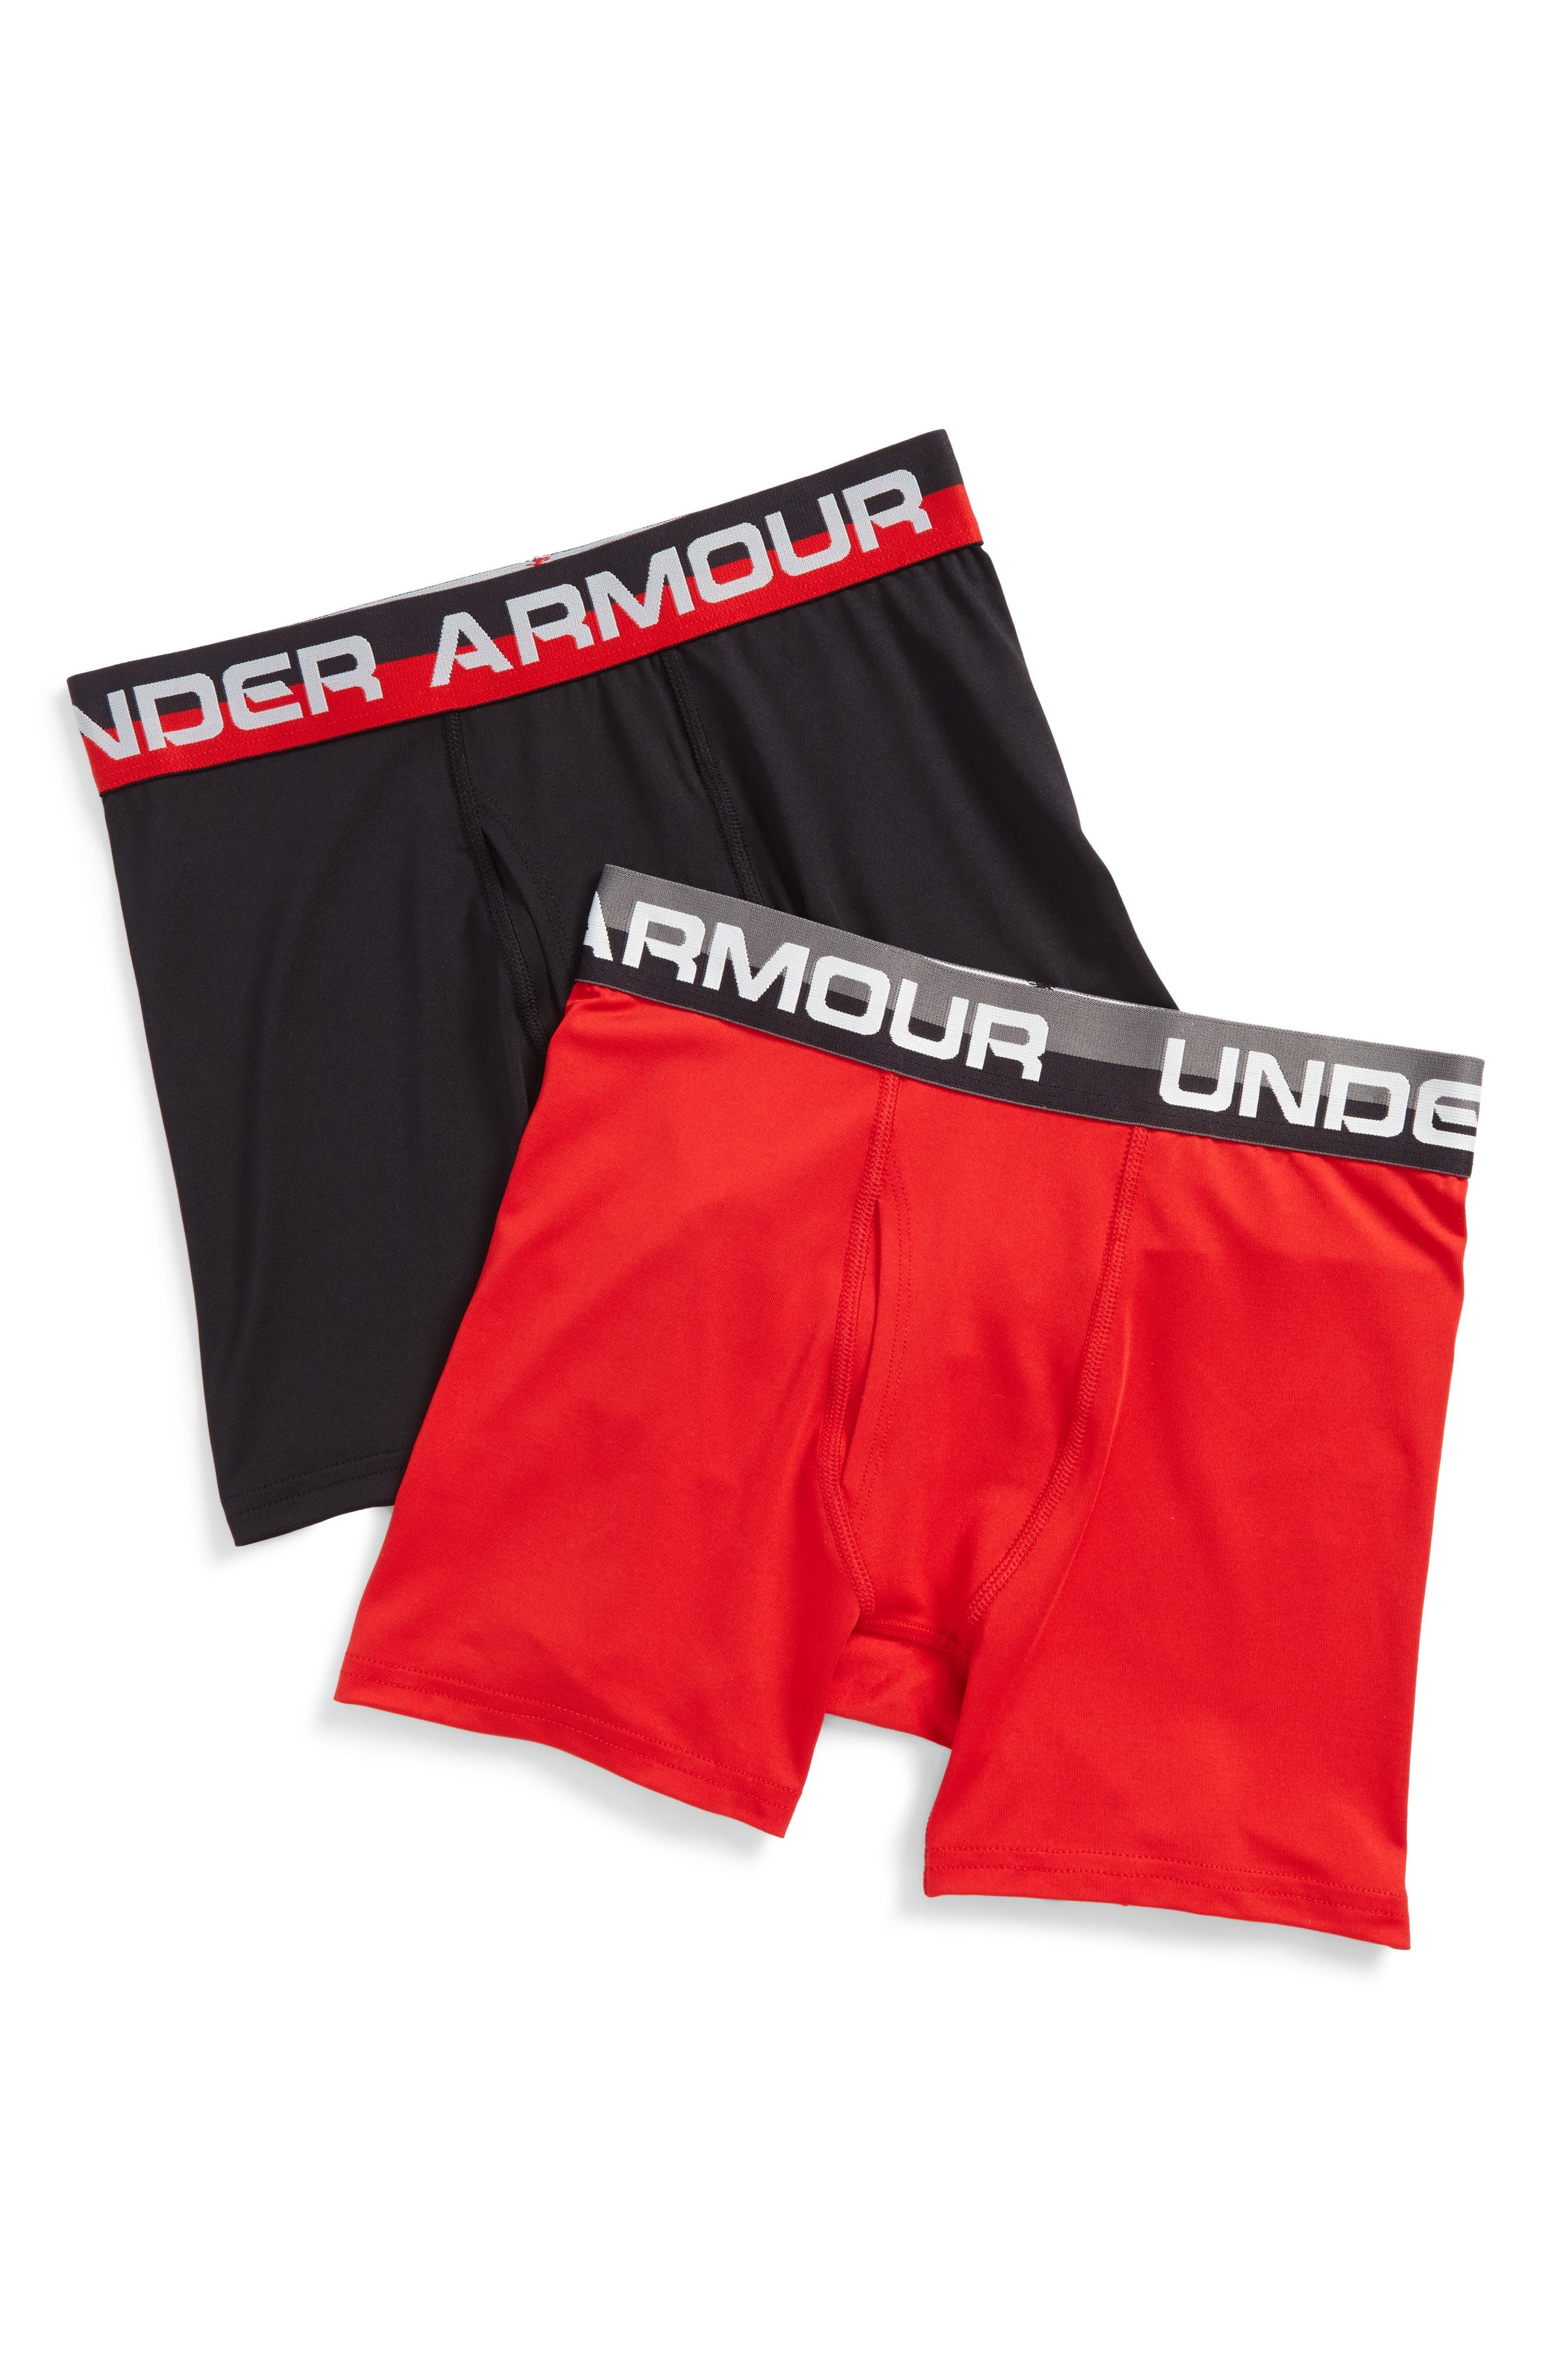 2-Pack Solid Performance Briefs,                             Main thumbnail 1, color,                             Red/ Black